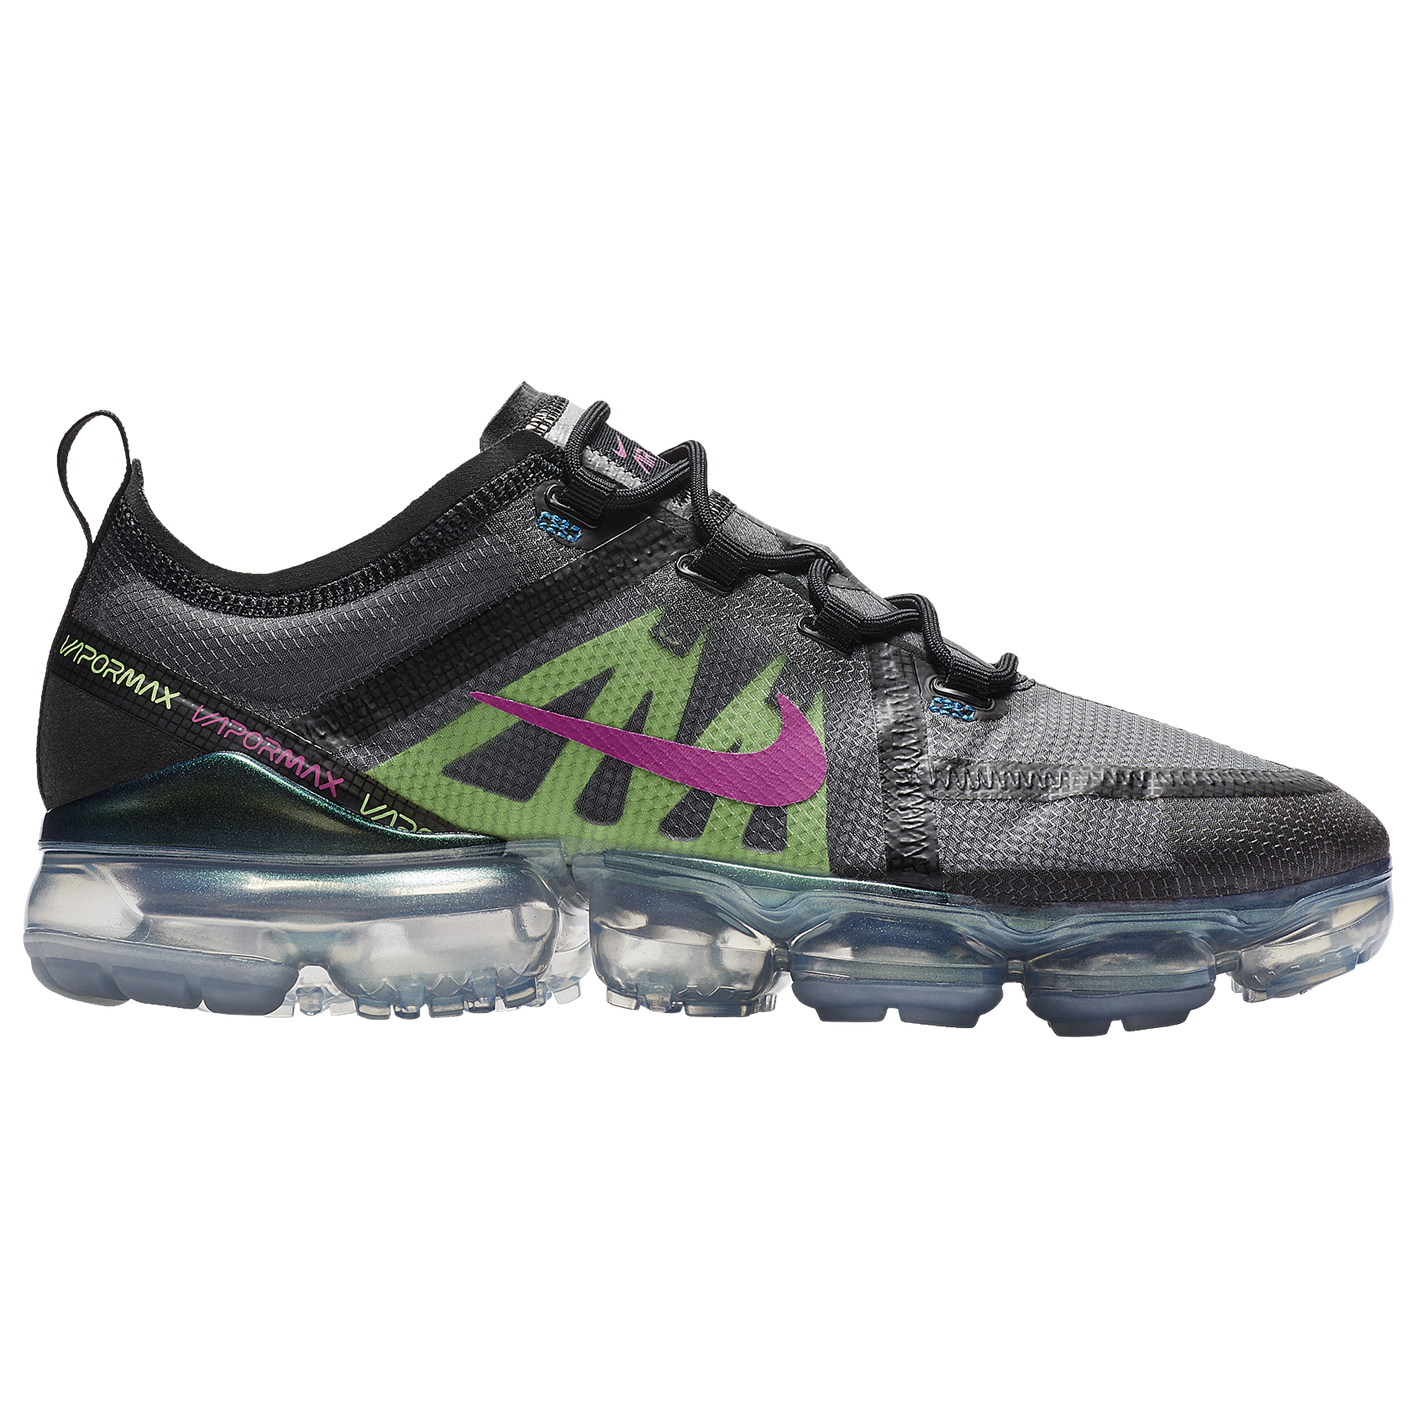 916ea1386856 Nike Air Vapormax 2019 Premium - Men s - Casual - Shoes - Black ...